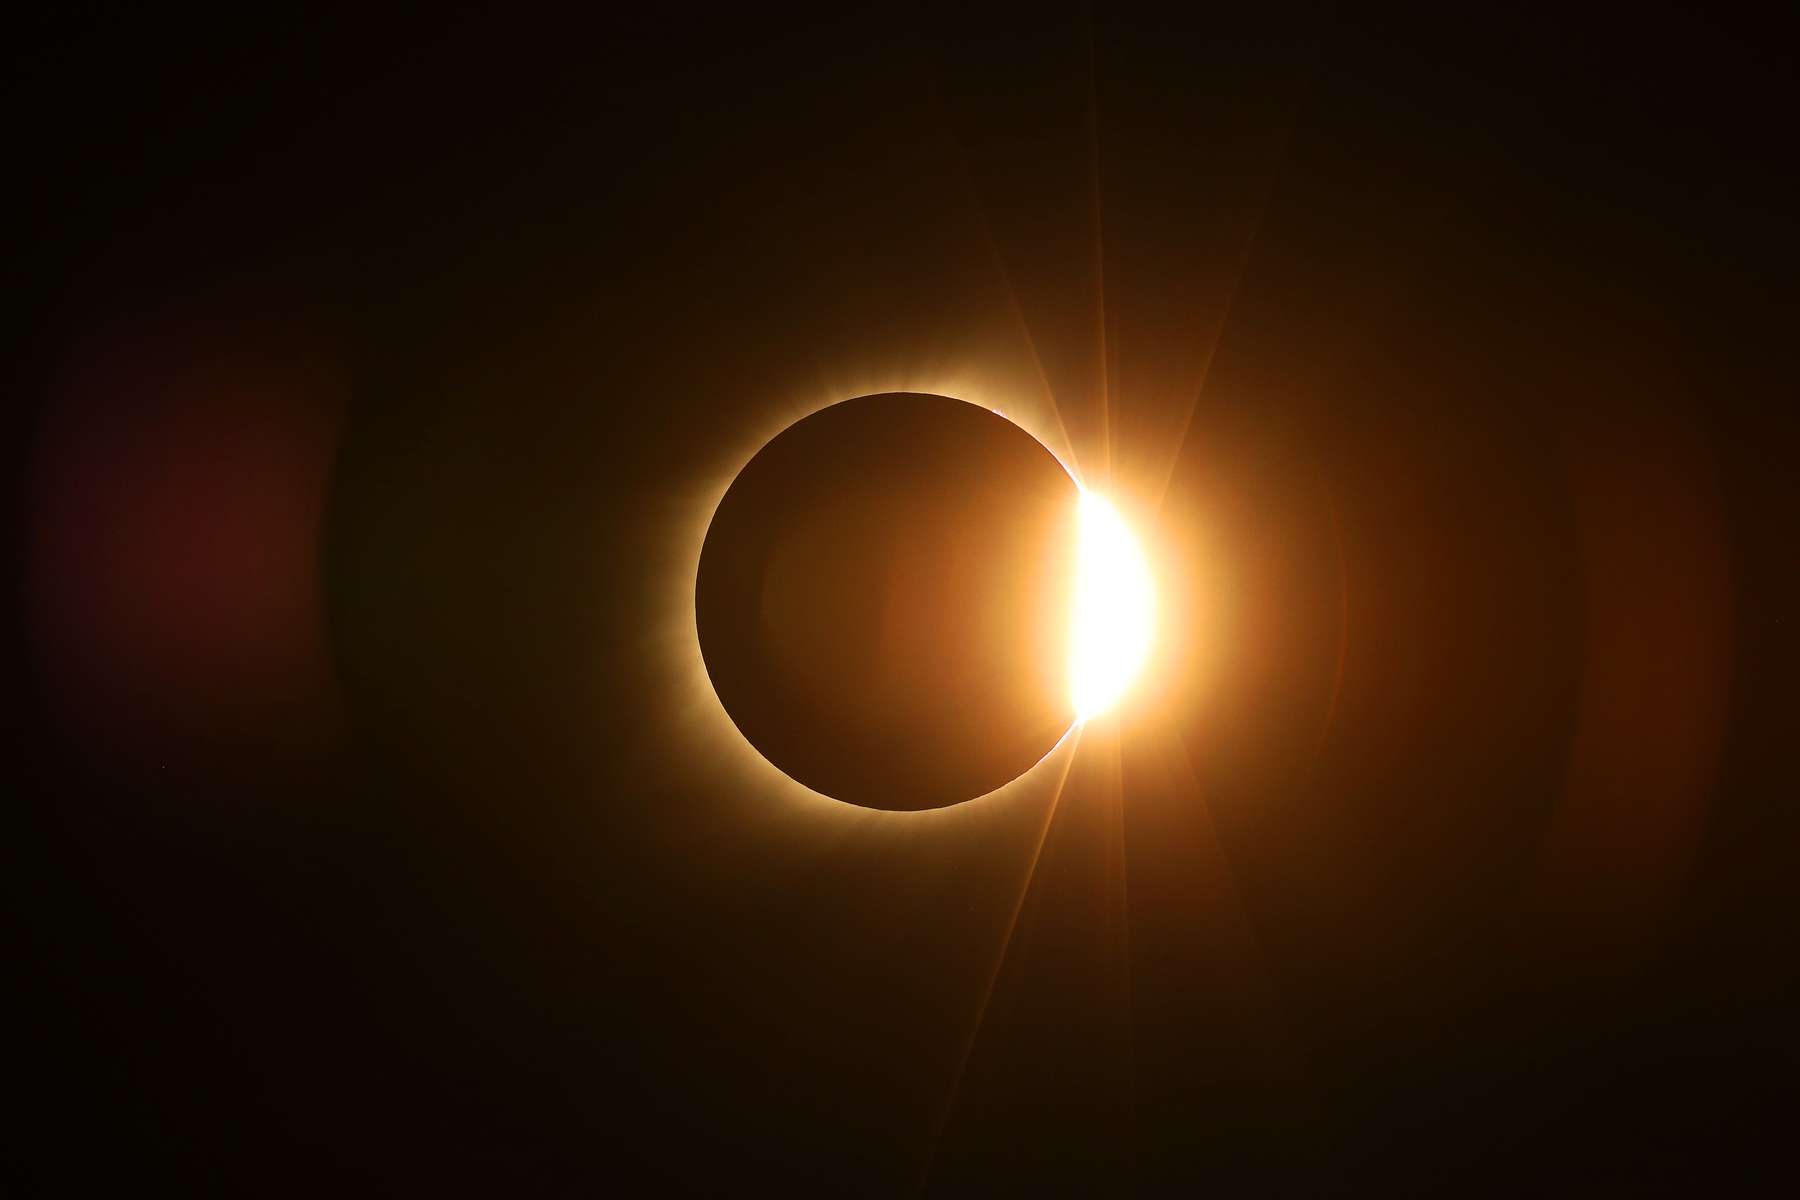 The moon passed in front of the sun for a total solar eclipse visible in August 2017 from Farmington, Mo.